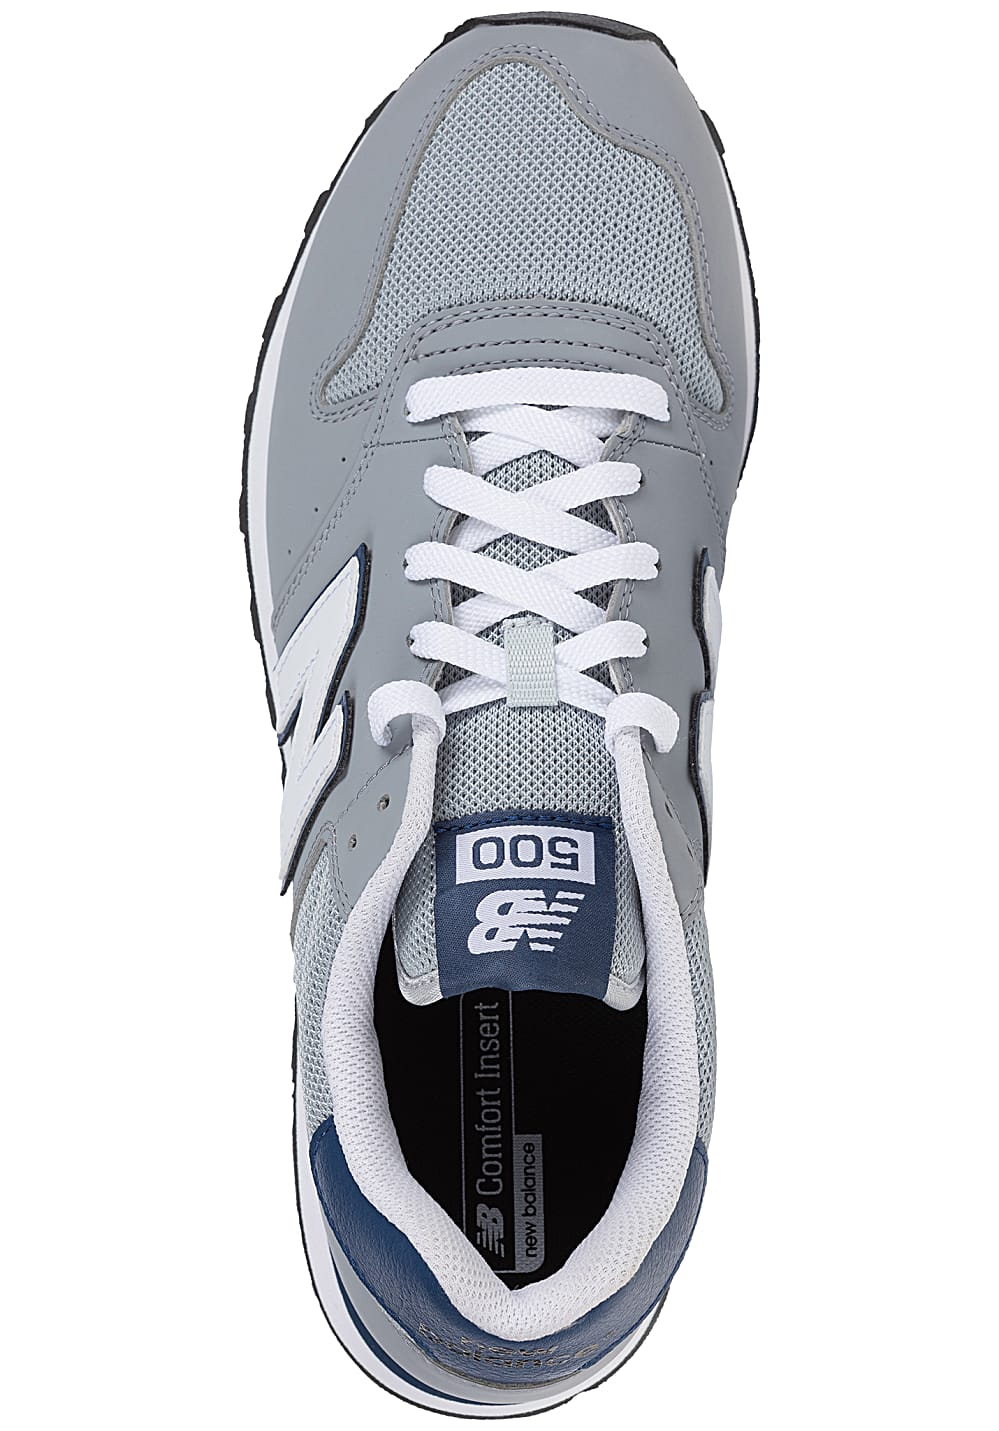 new balance 500 hombres gm